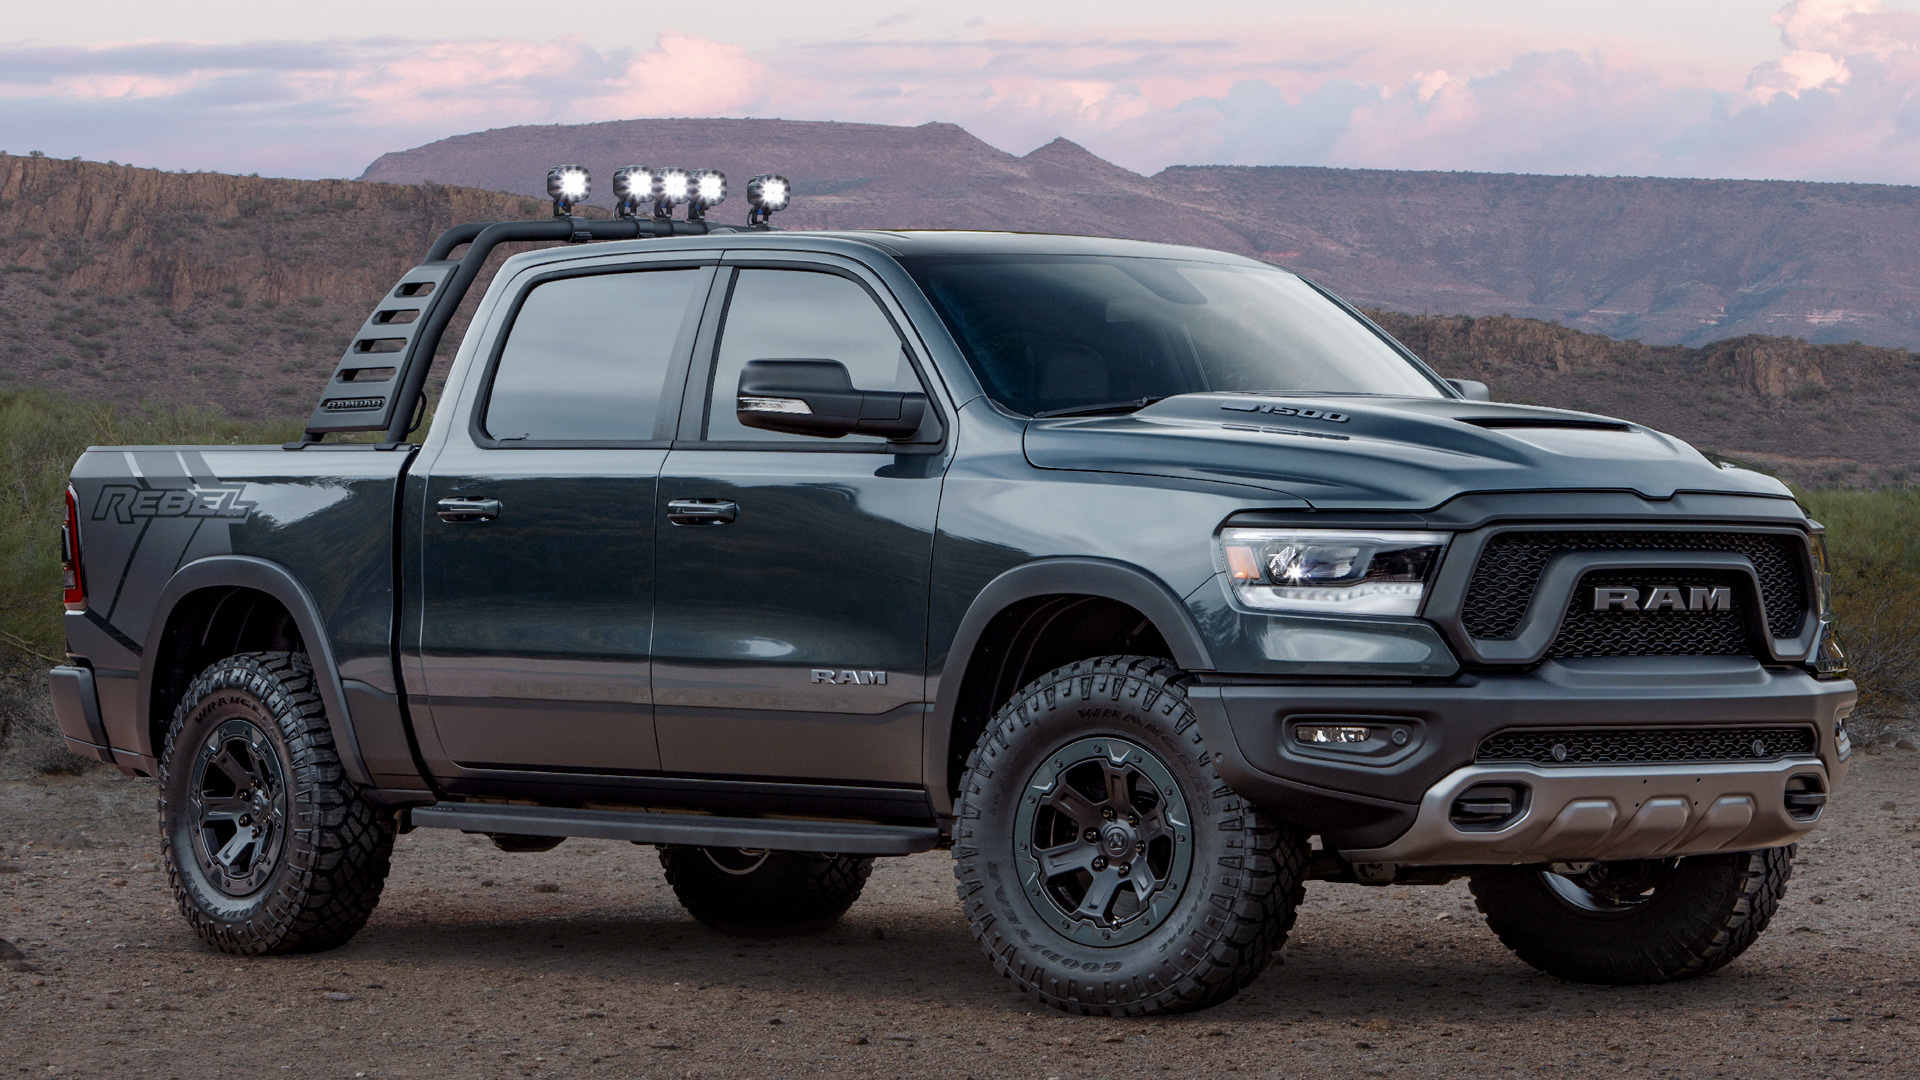 2018 Ram 1500 Rebel Smoke Concept - Wallpapers and HD Images | Car Pixel